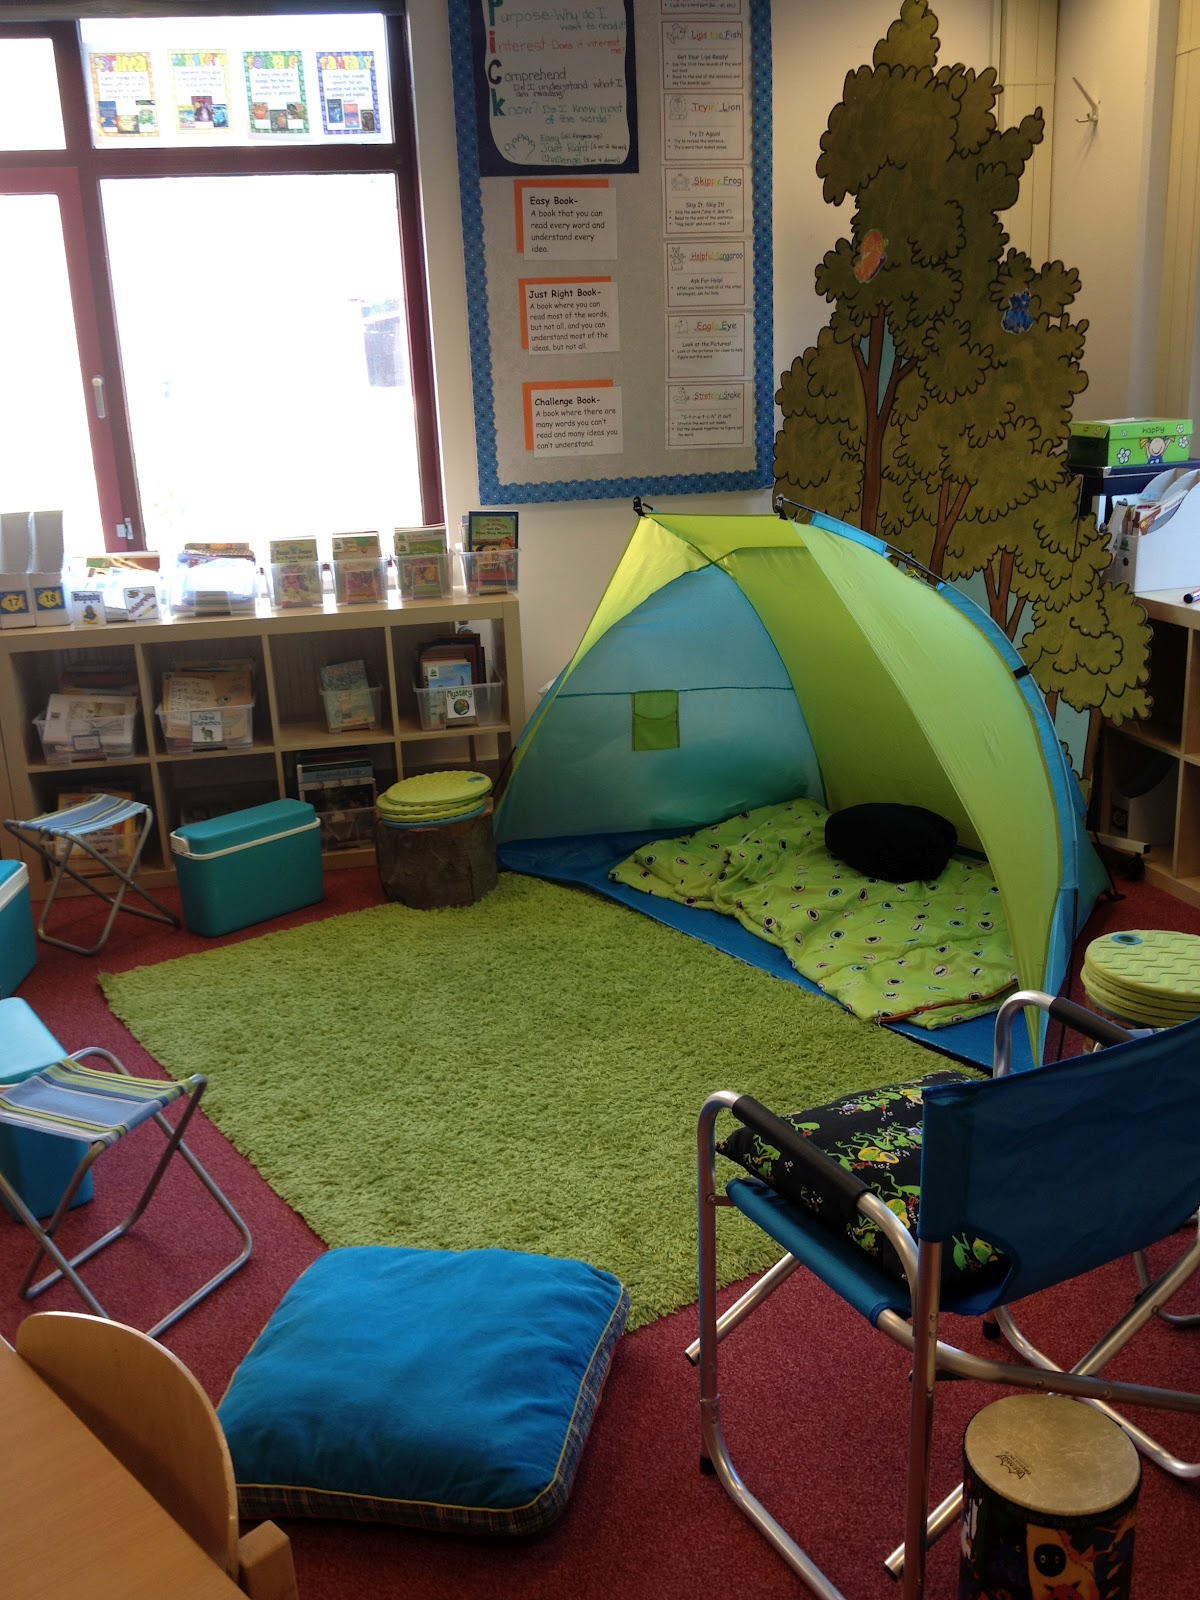 Classroom Decorating Ideas Camping Theme : Travelnteach camping class theme